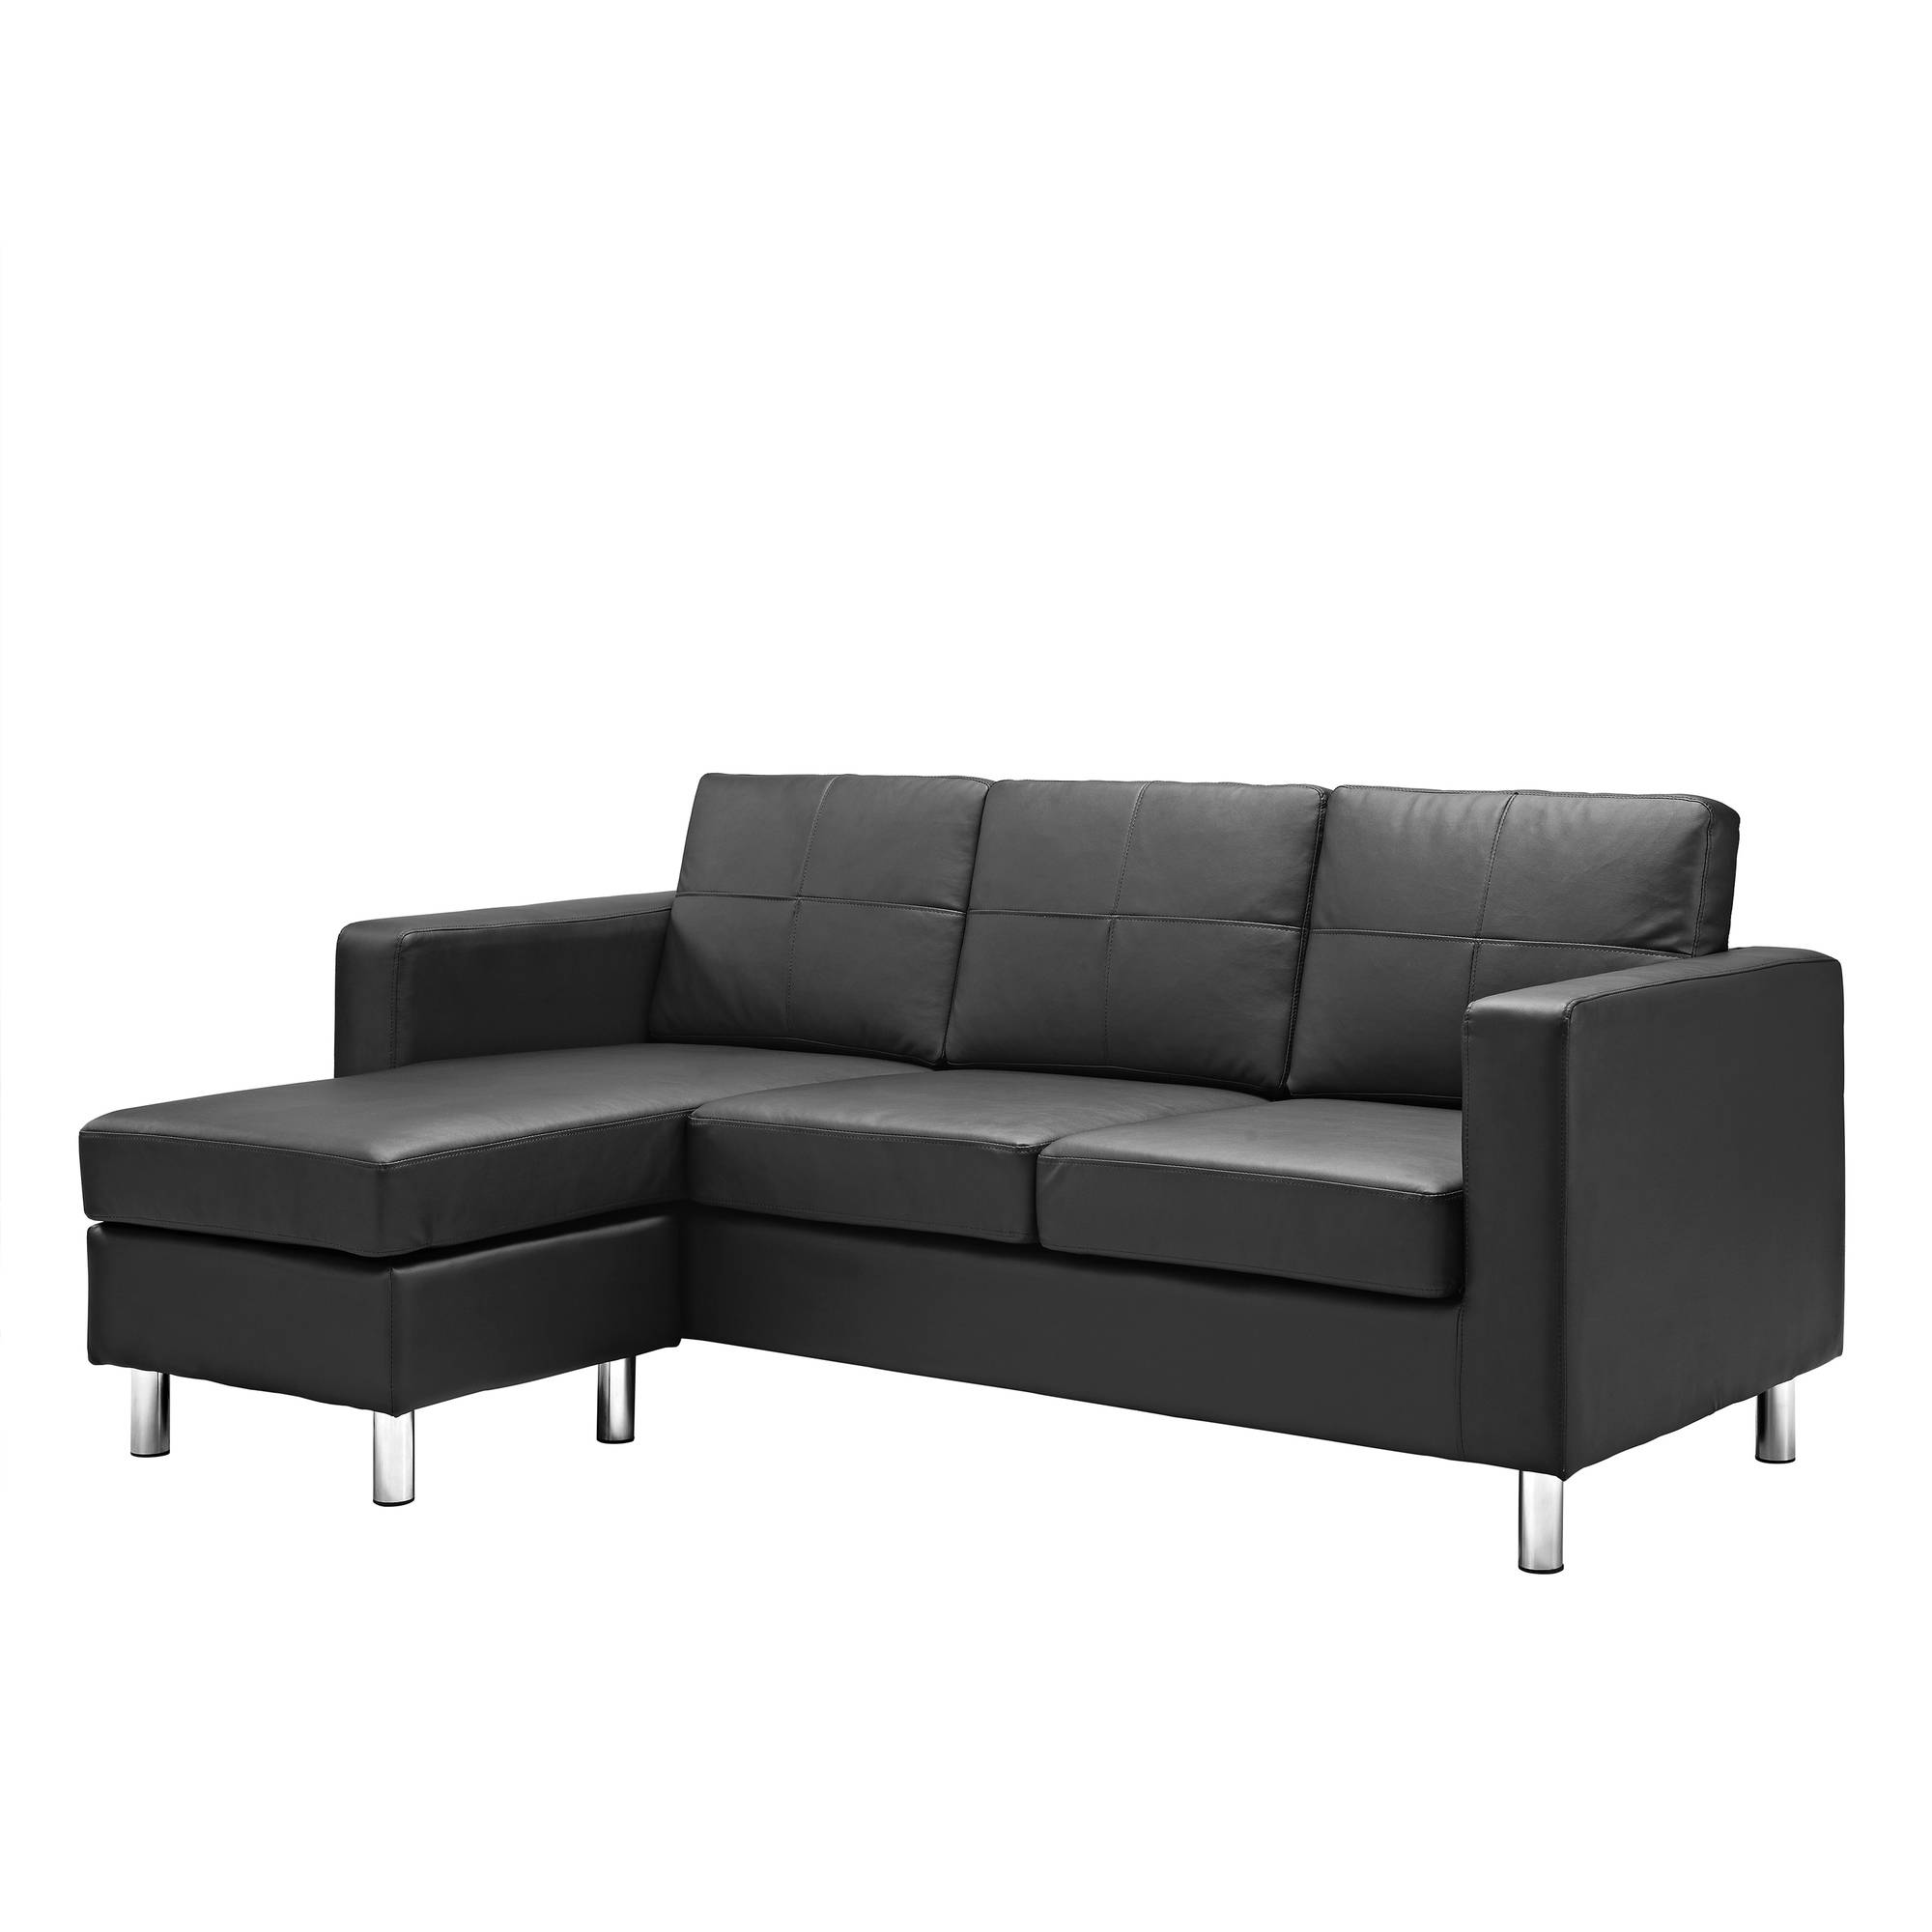 small sectional sofa dorel living small spaces configurable sectional sofa, multiple colors -  walmart.com TIUEKQV